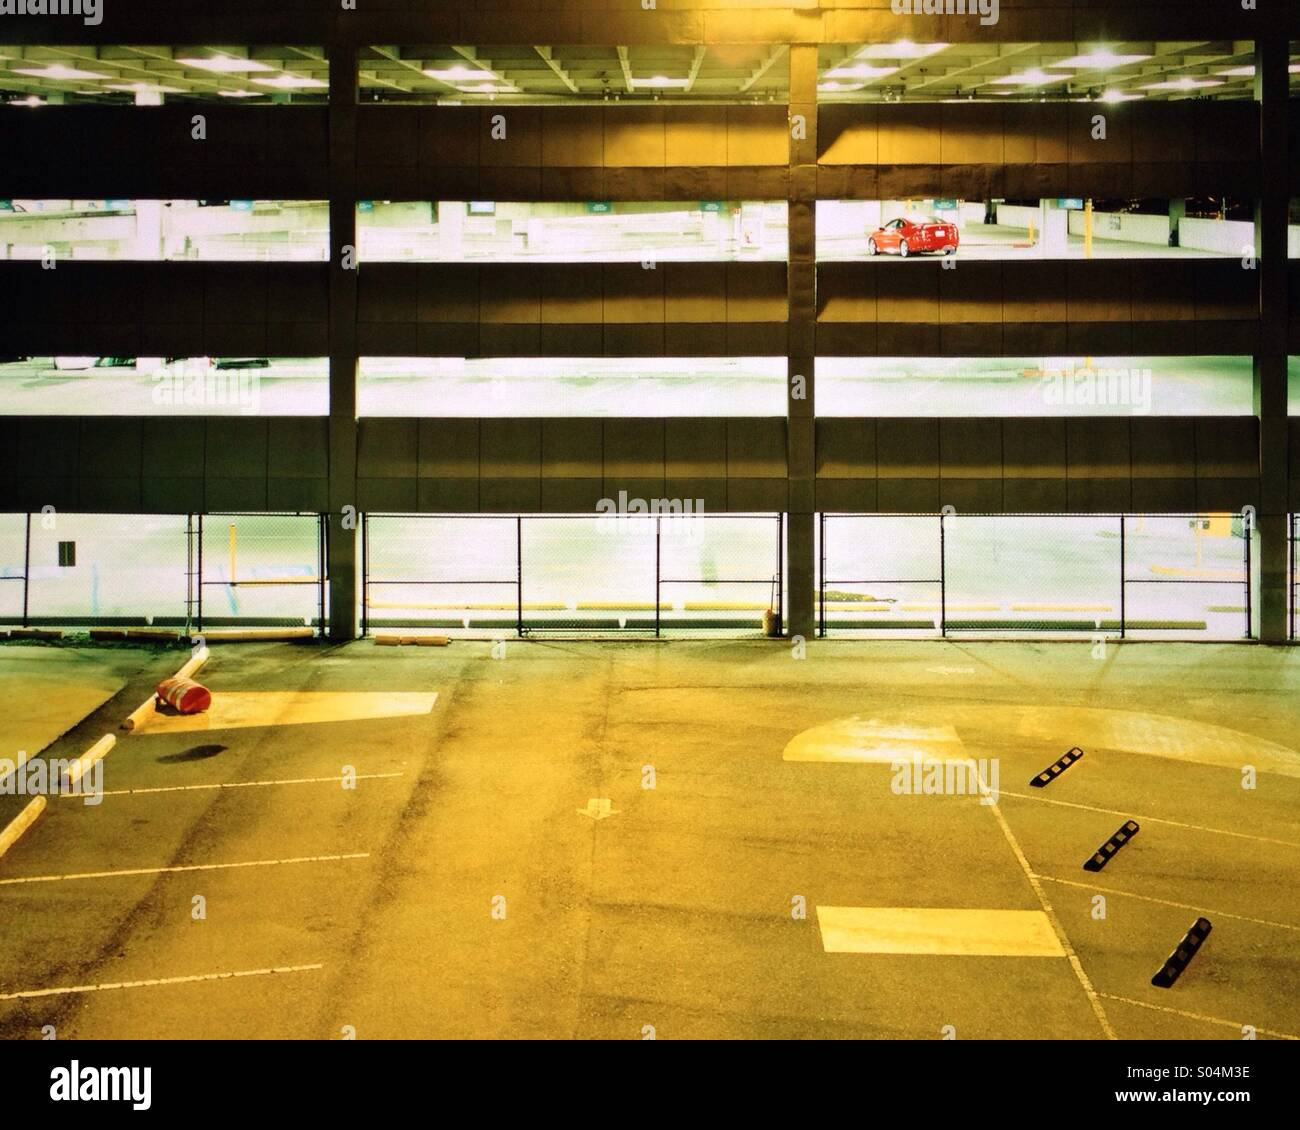 Red car in empty parking garage - Stock Image